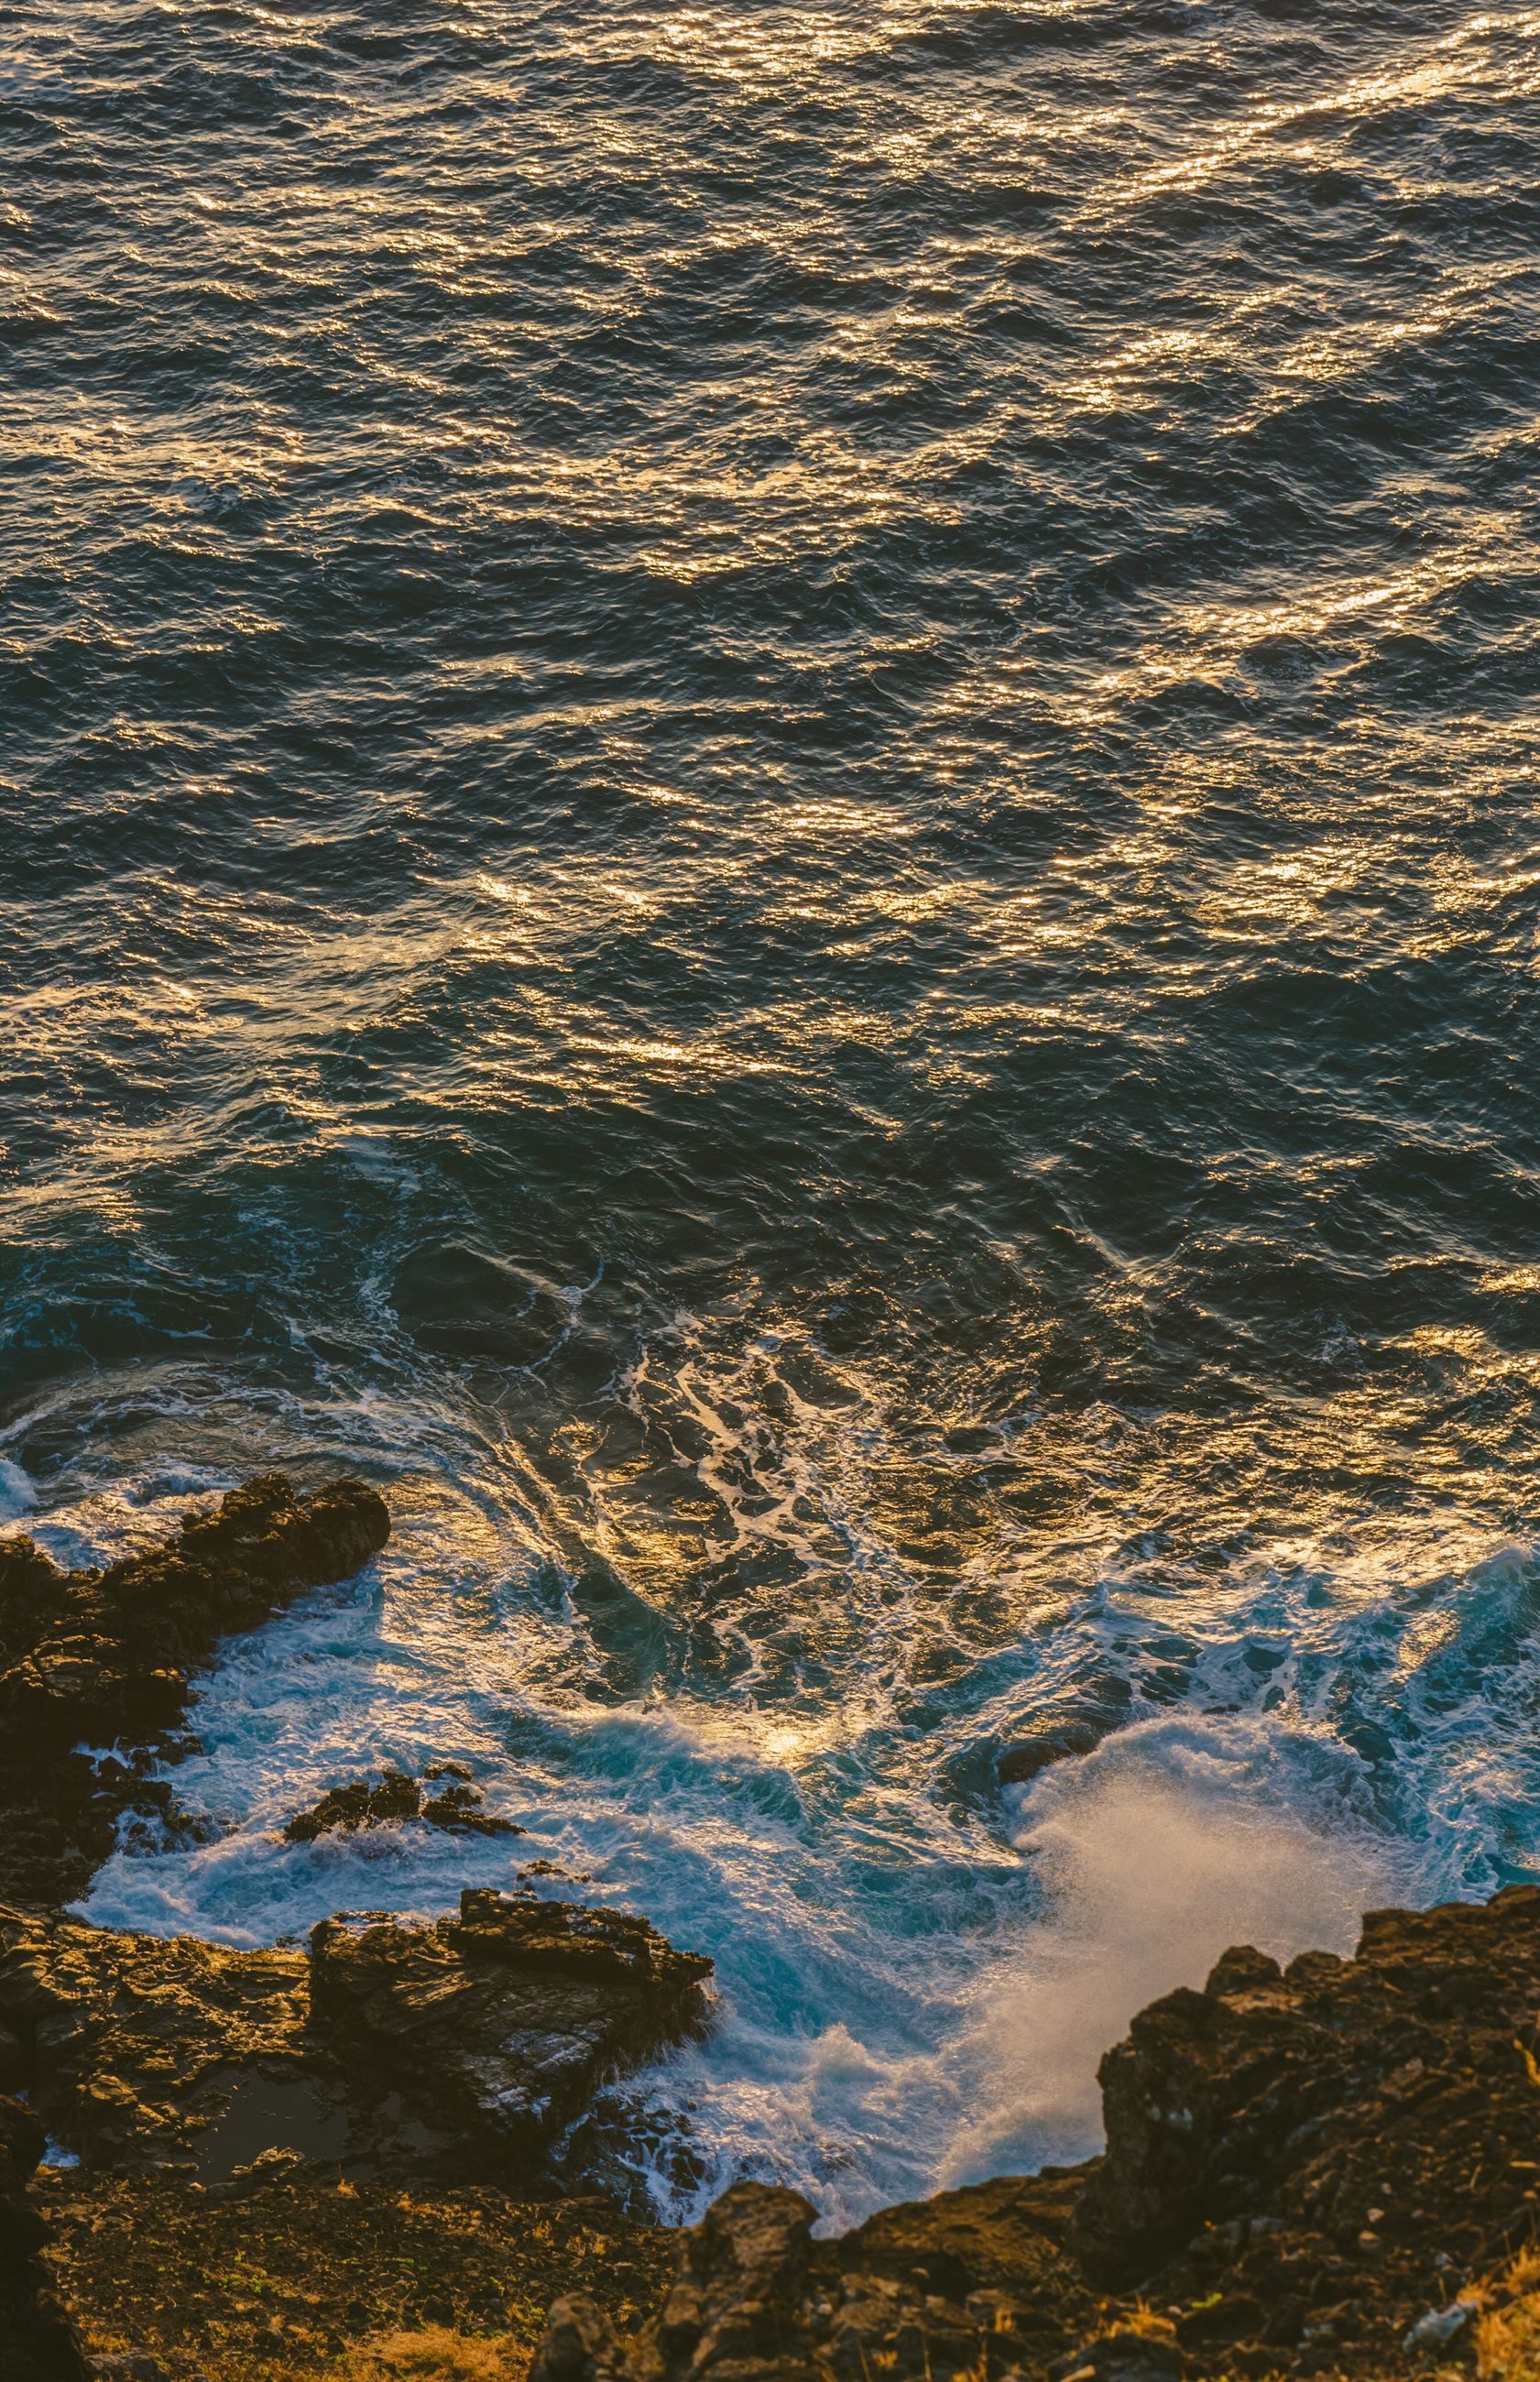 water, high angle view, nature, beauty in nature, tranquility, scenics, sea, tranquil scene, full frame, beach, rippled, backgrounds, wave, waterfront, outdoors, surf, shore, reflection, aerial view, idyllic